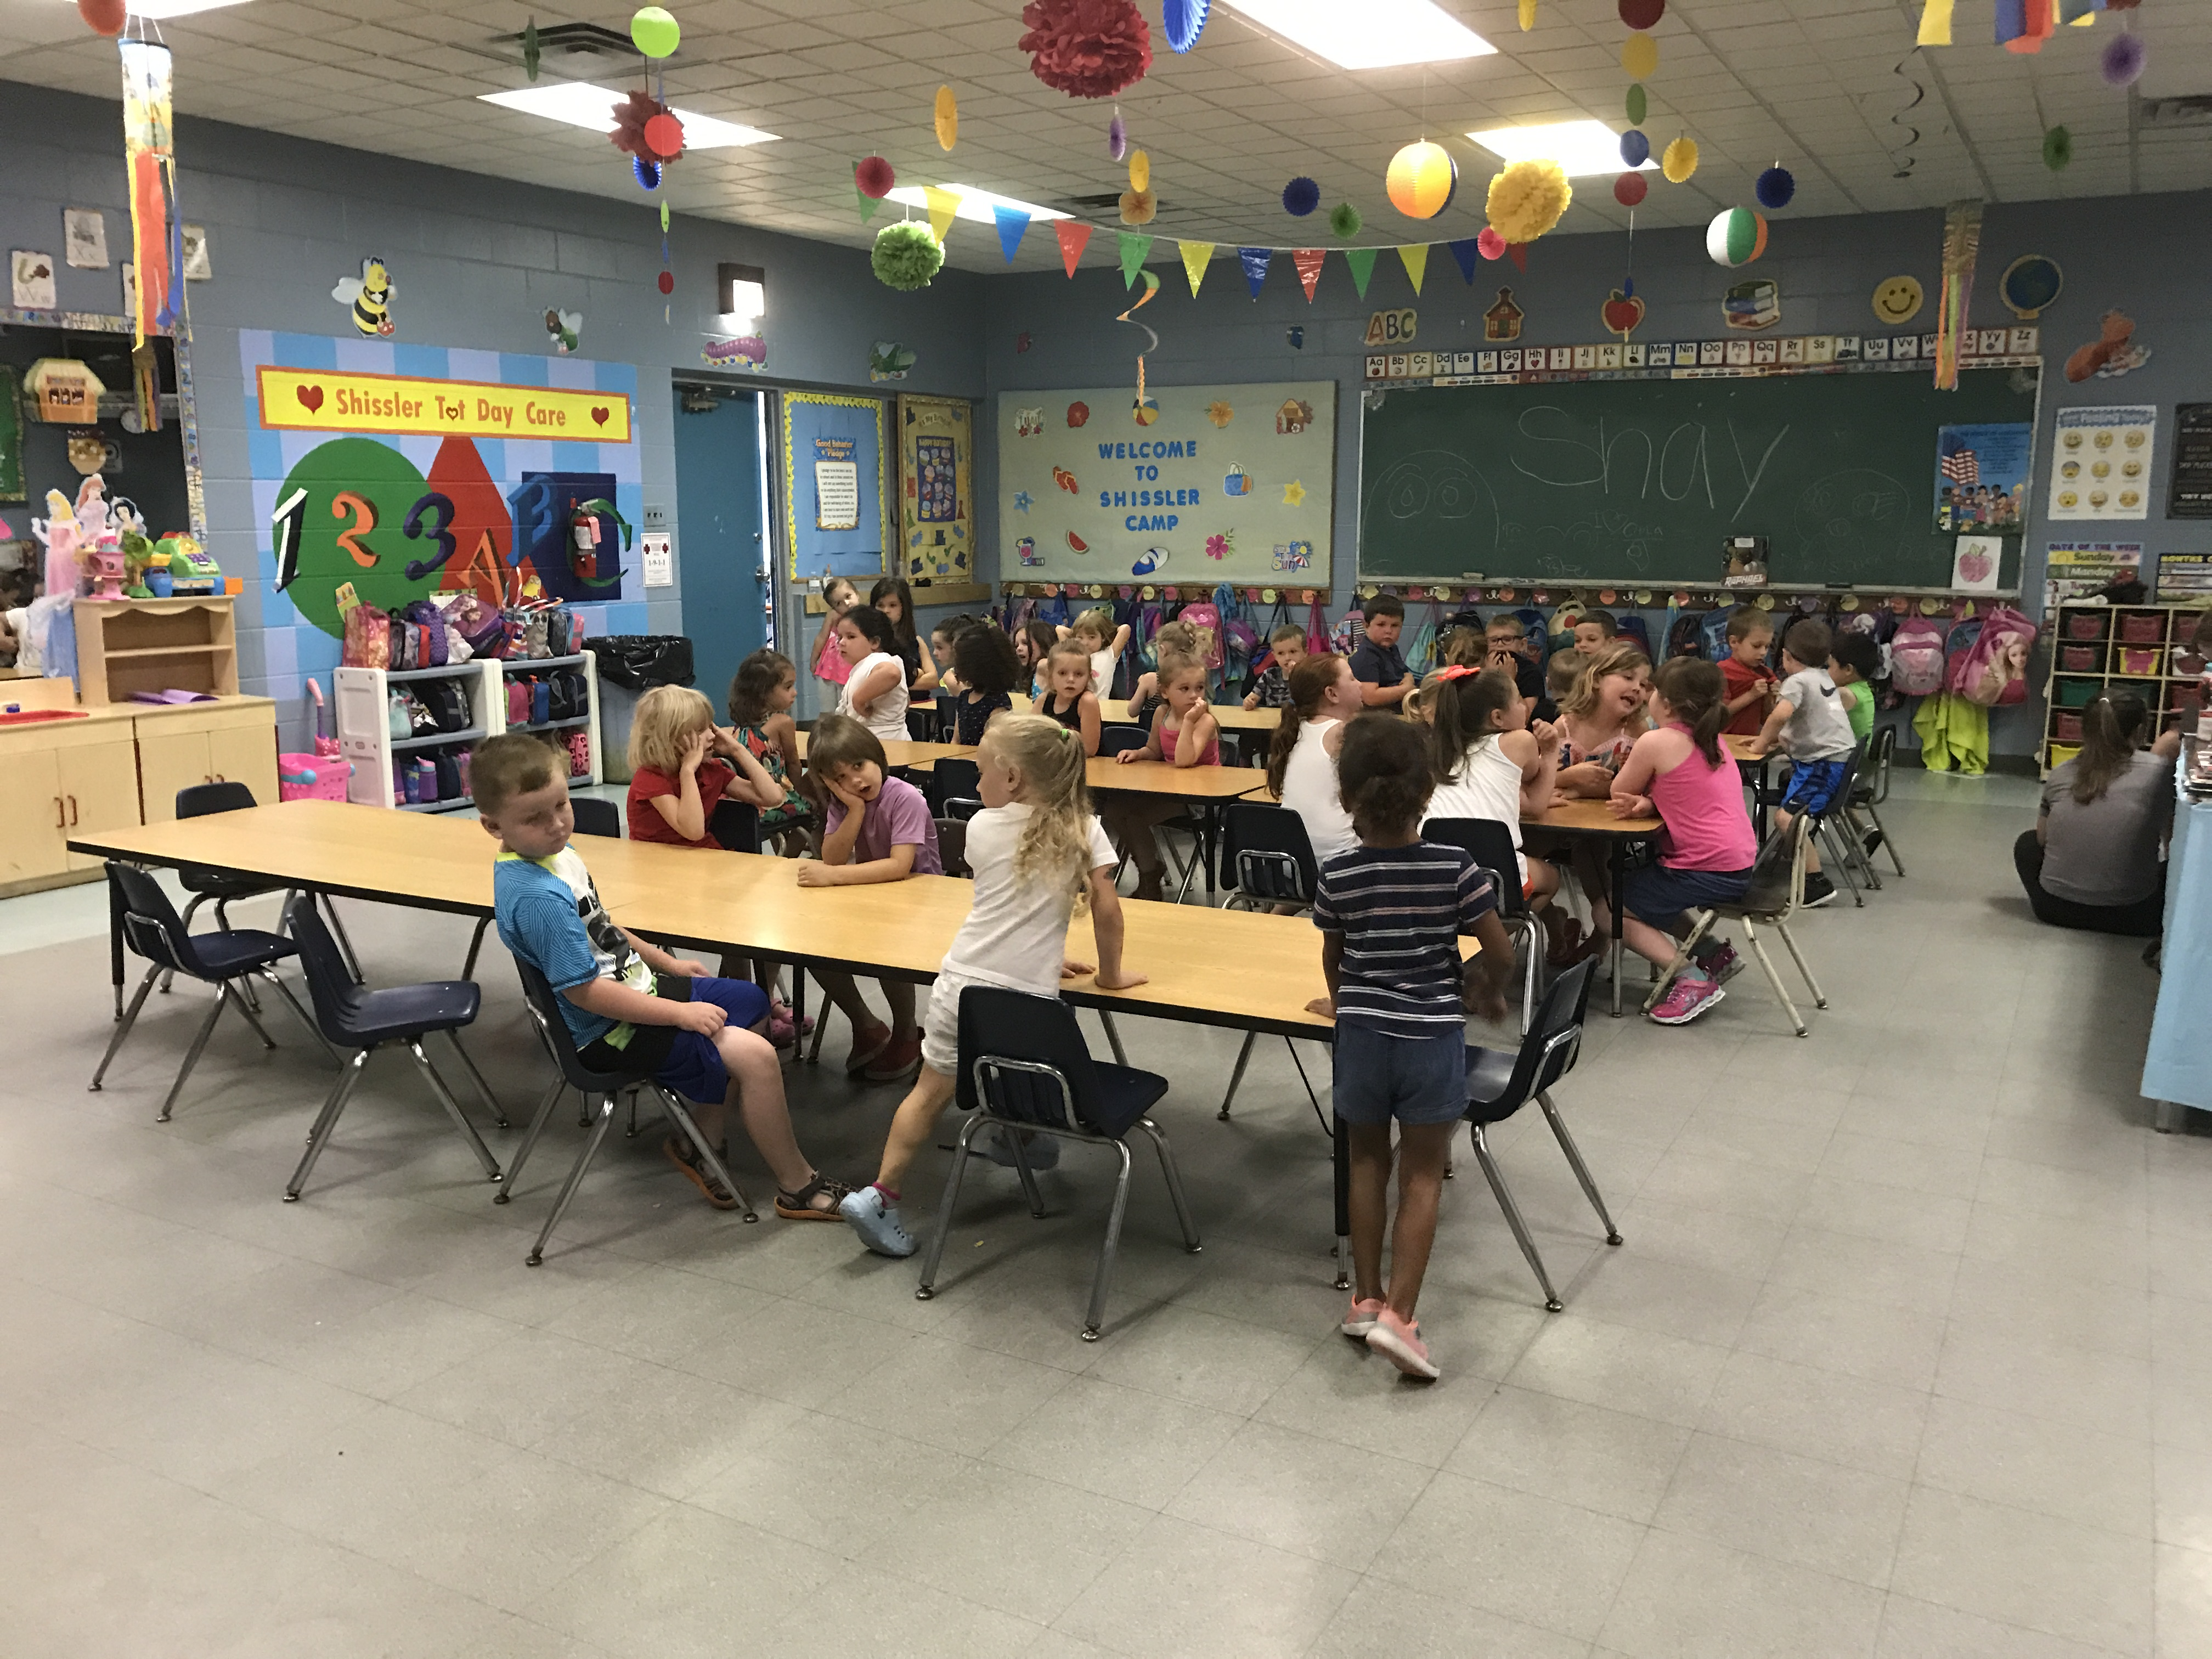 Glavin and Shissler Recreation Centers – First Week